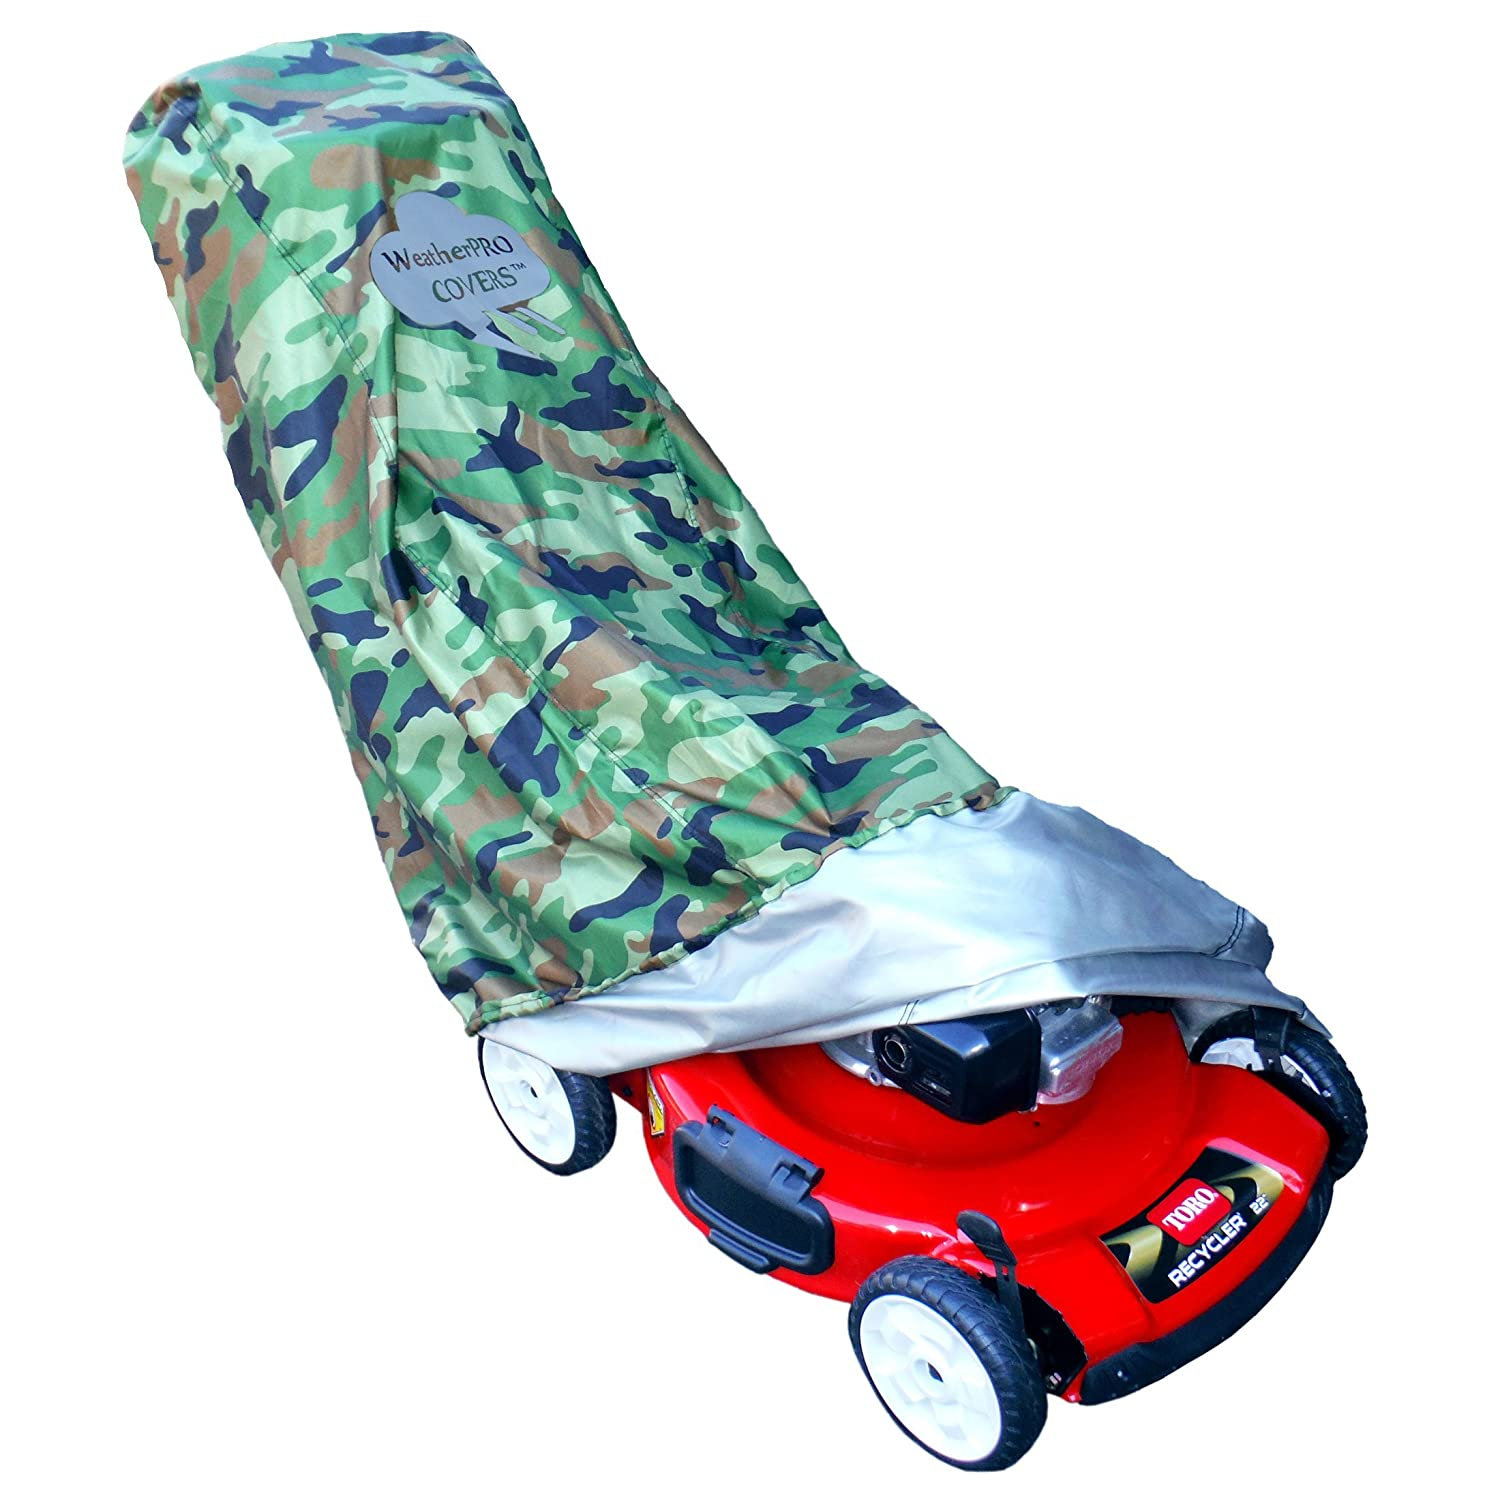 WeatherPRO Lawn Mower Cover - Waterproof Heavy Duty Camo Style - Manufacturer Guaranteed - Weather and UV Protected Covering for Push Mowers - Large Size for Universal Fit WeatherPRO Covers WPC-CLMC300D